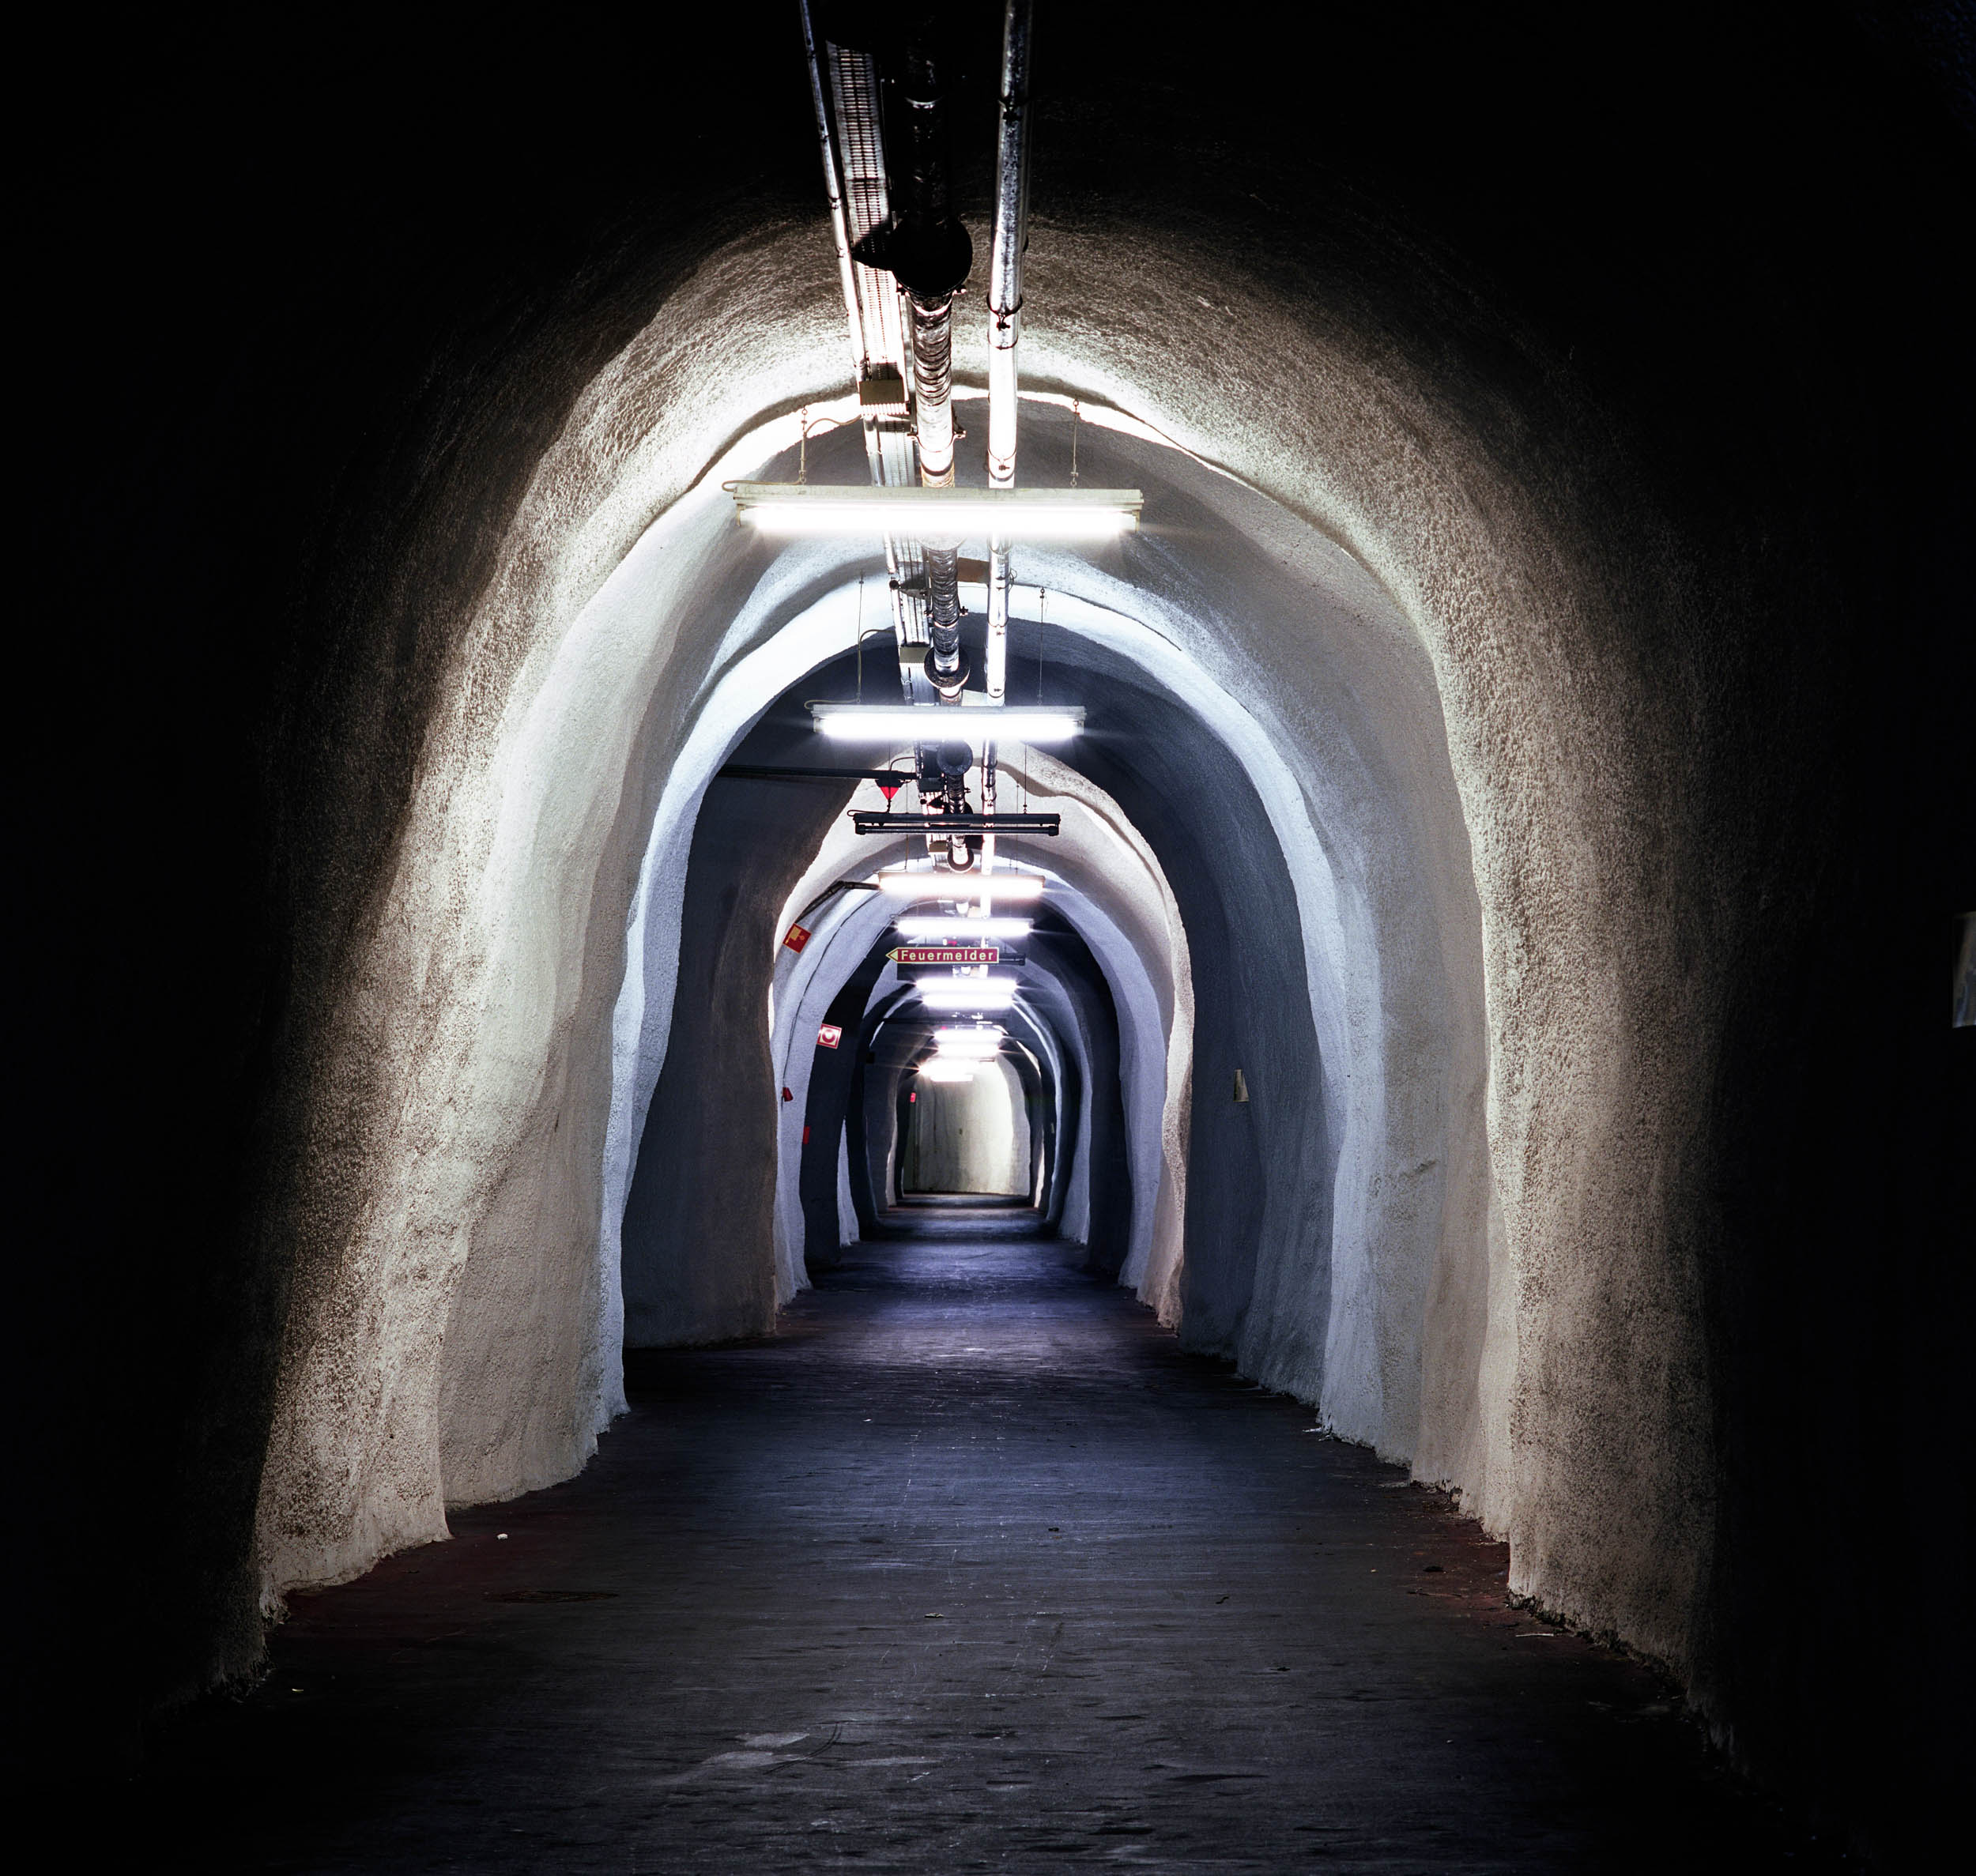 Underground bunker of the West German Army